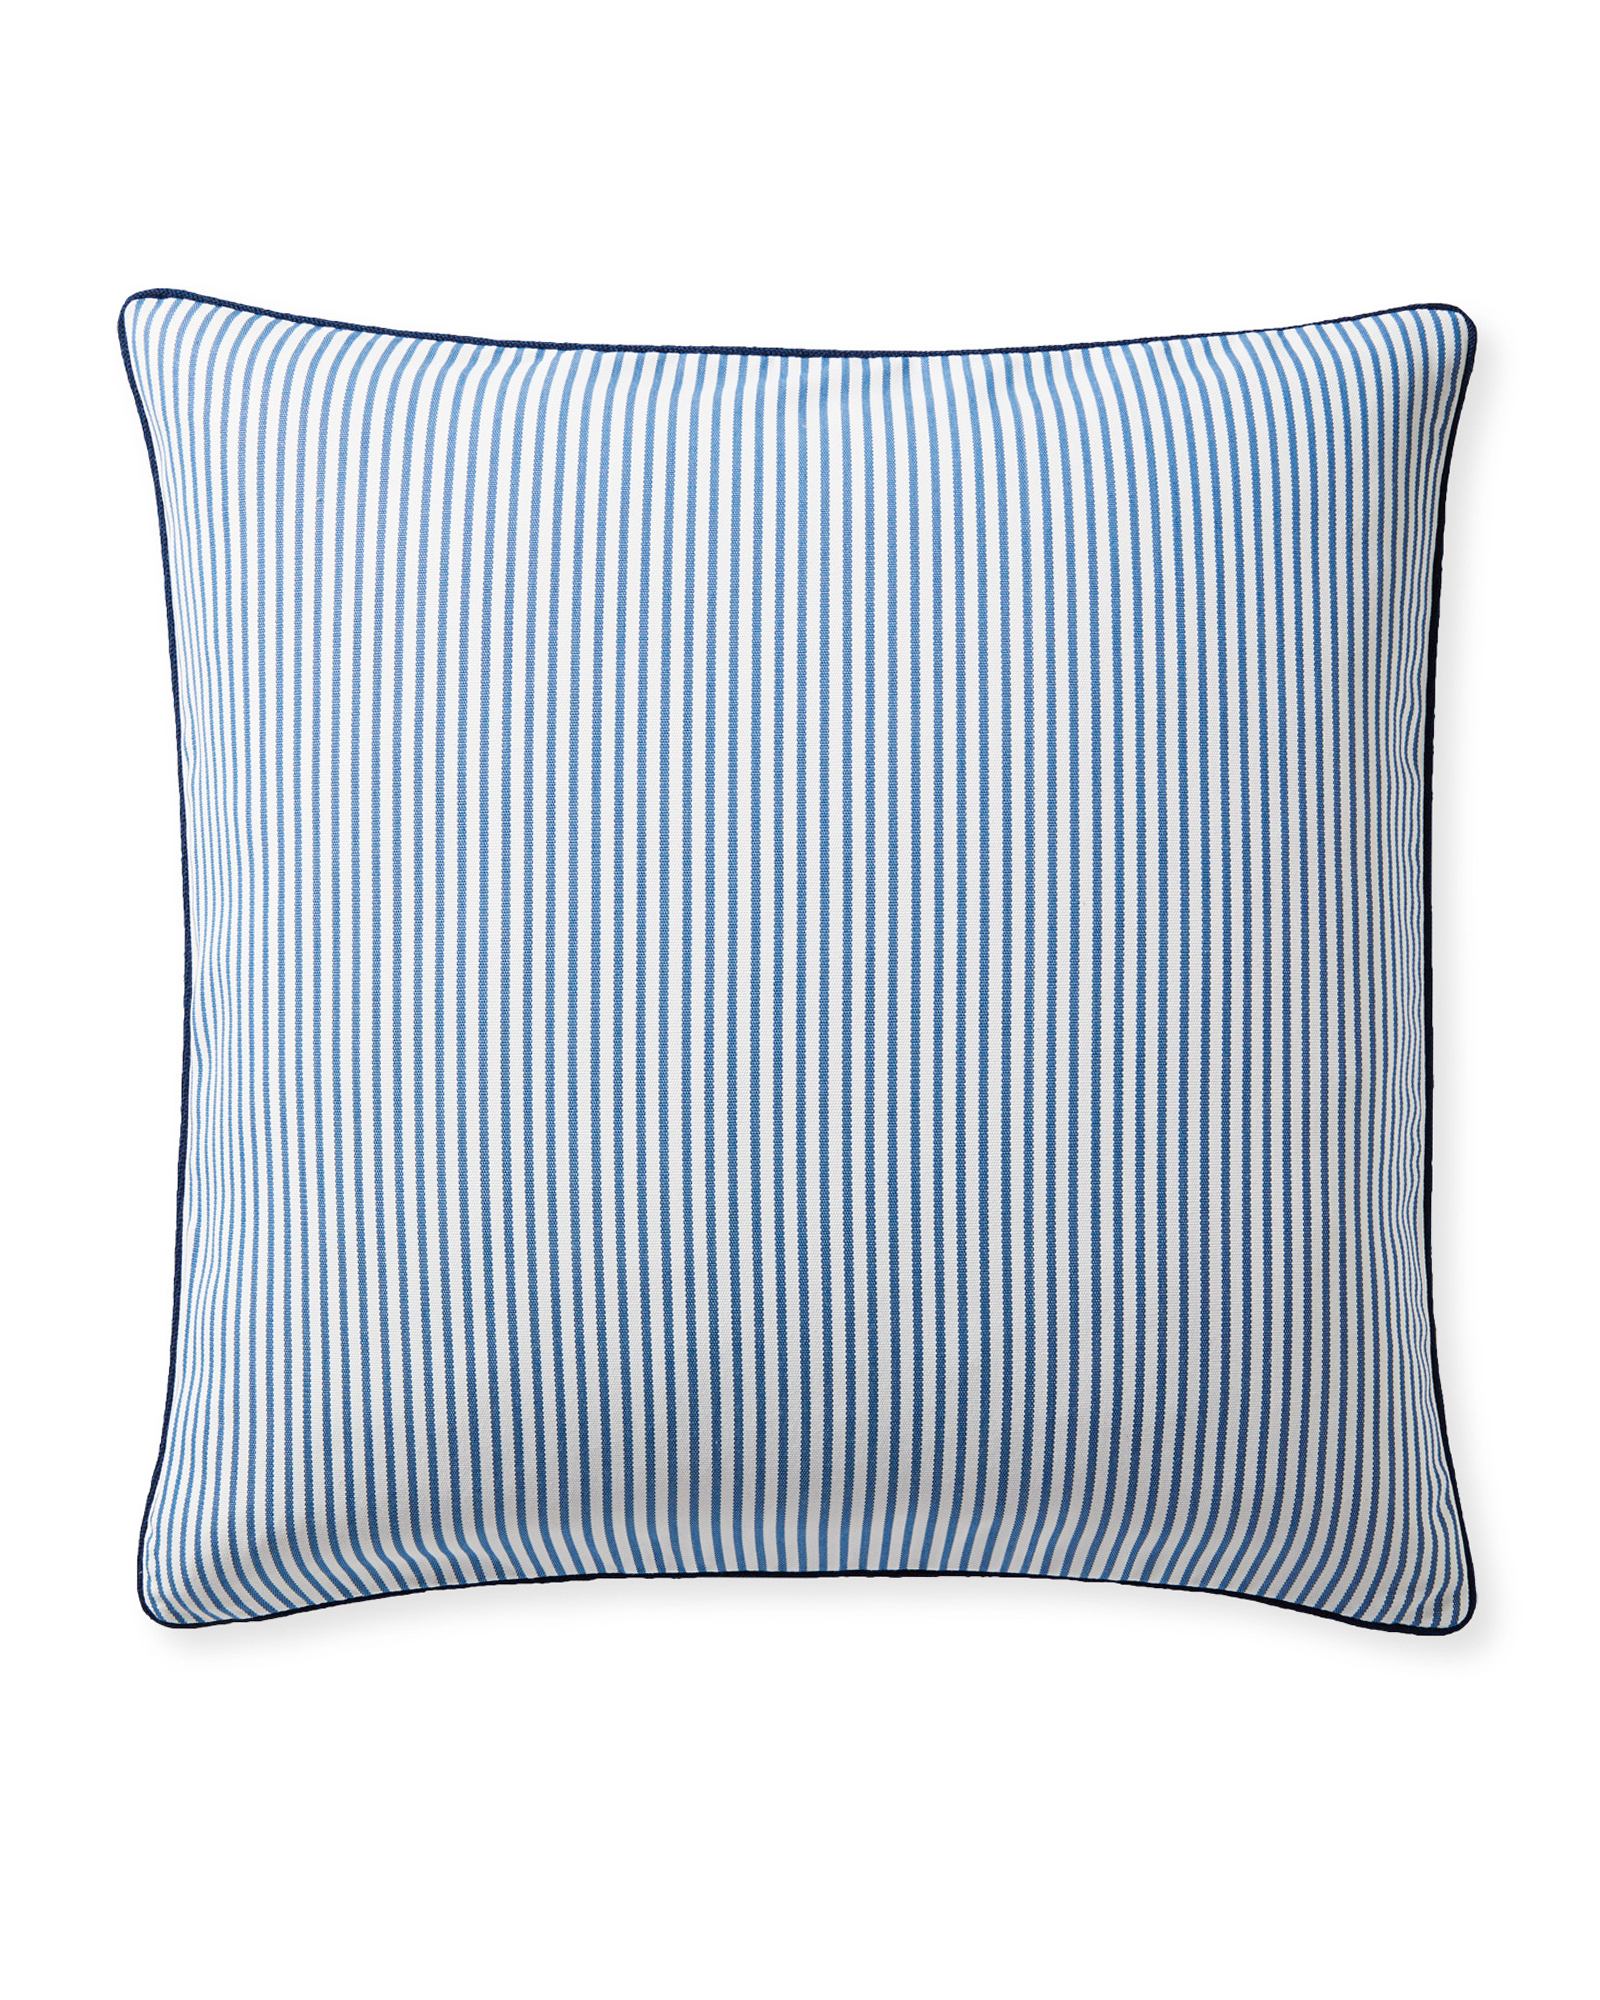 Perennials® Pinstripe Pillow Cover, French Blue/Navy